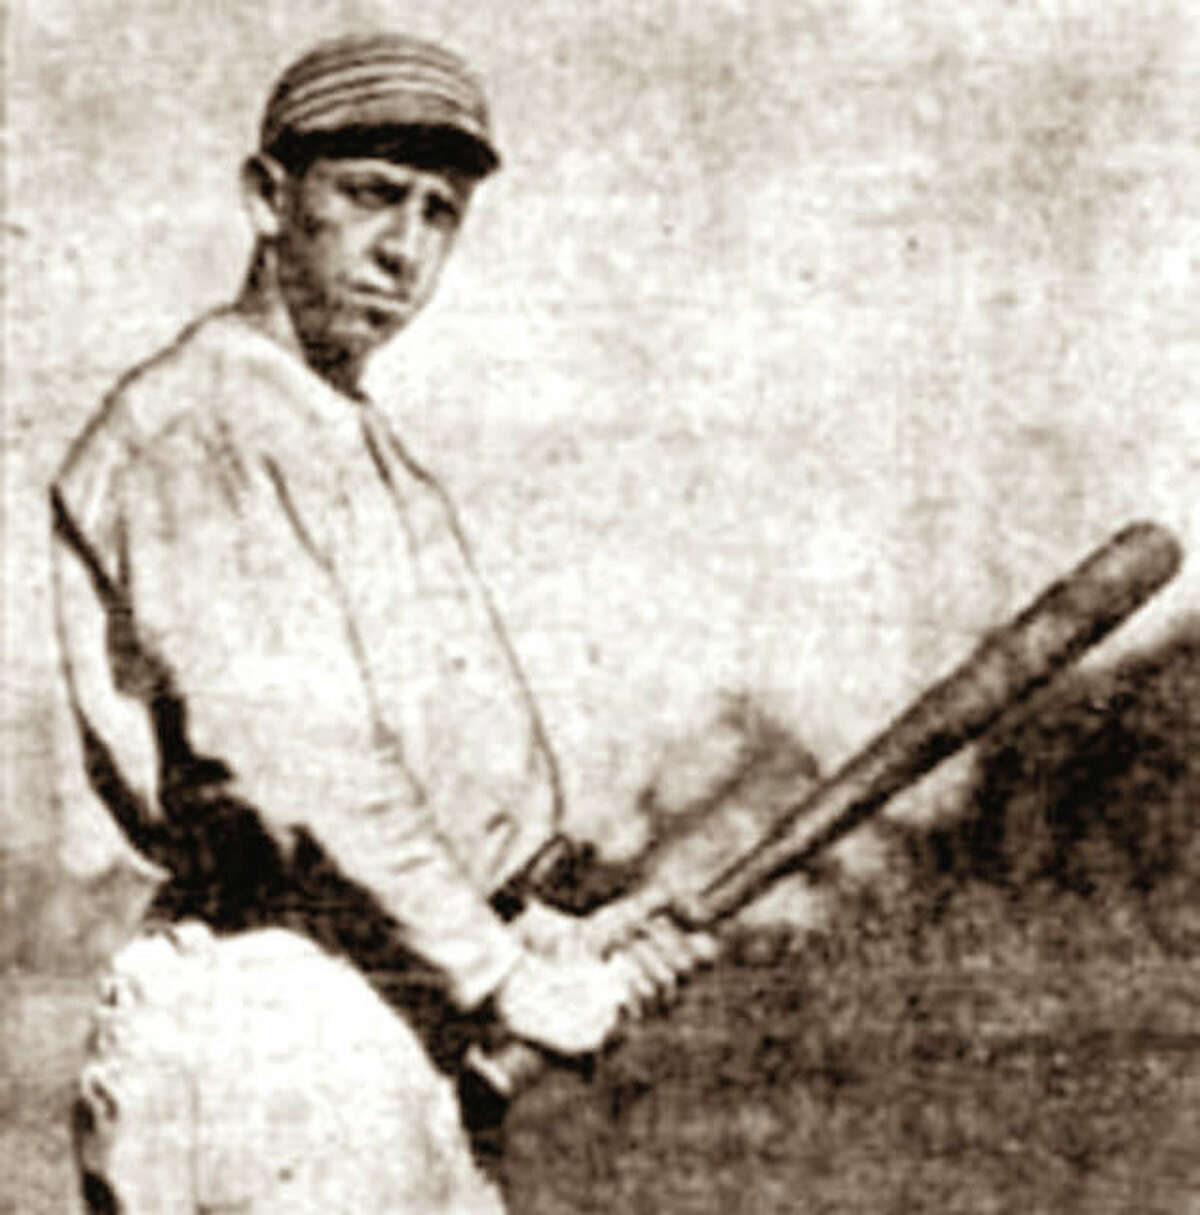 In 1908, the Danville Speakers of the Eastern Illinois League moved to Staunton in midseason. Also that season, former Major League player William Ashley Sunday, above, who was also an evangelist, rallied against playing games on Sunday and against the sale of liquor, both of which eventually led to the demise of the league.